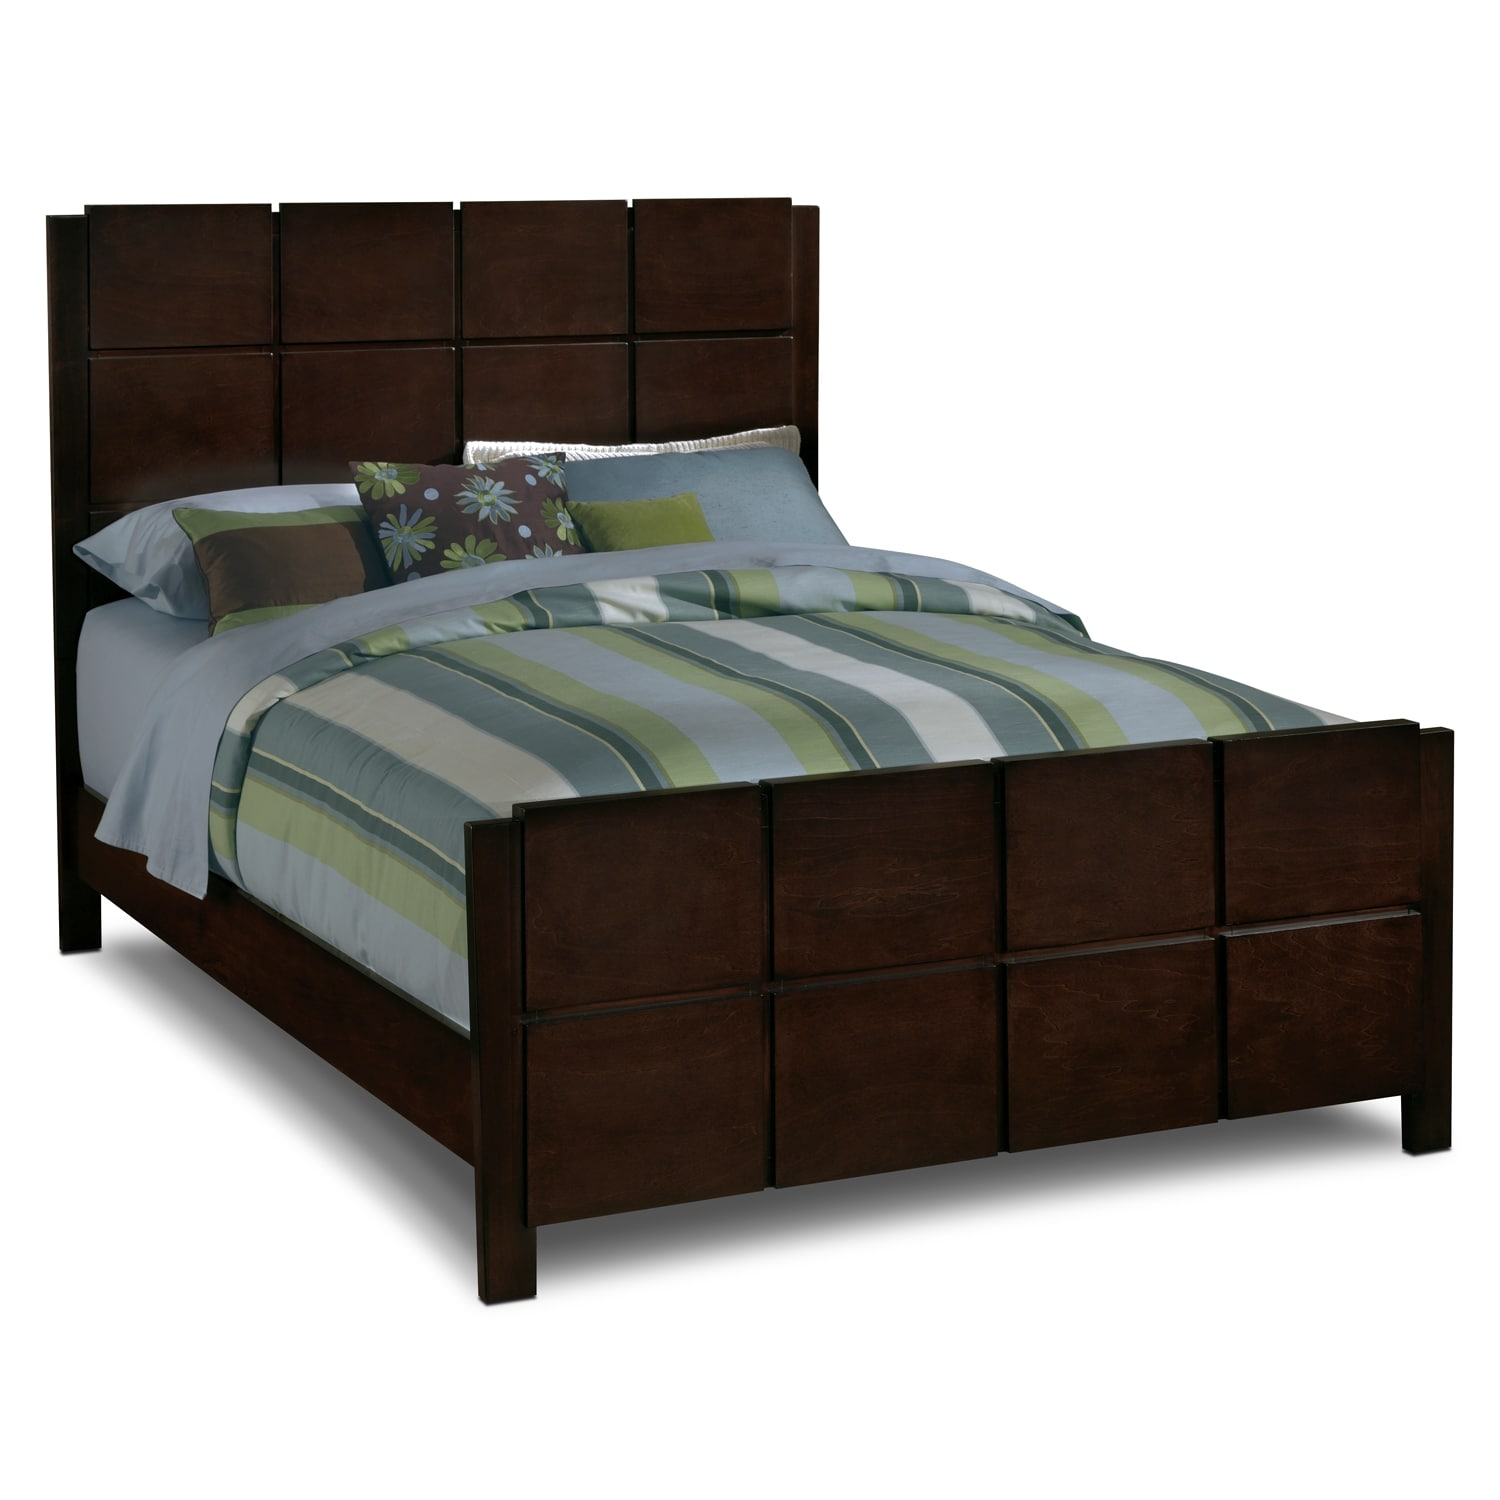 Queen Beds | Value City Furniture | Value City Furniture and Mattresses